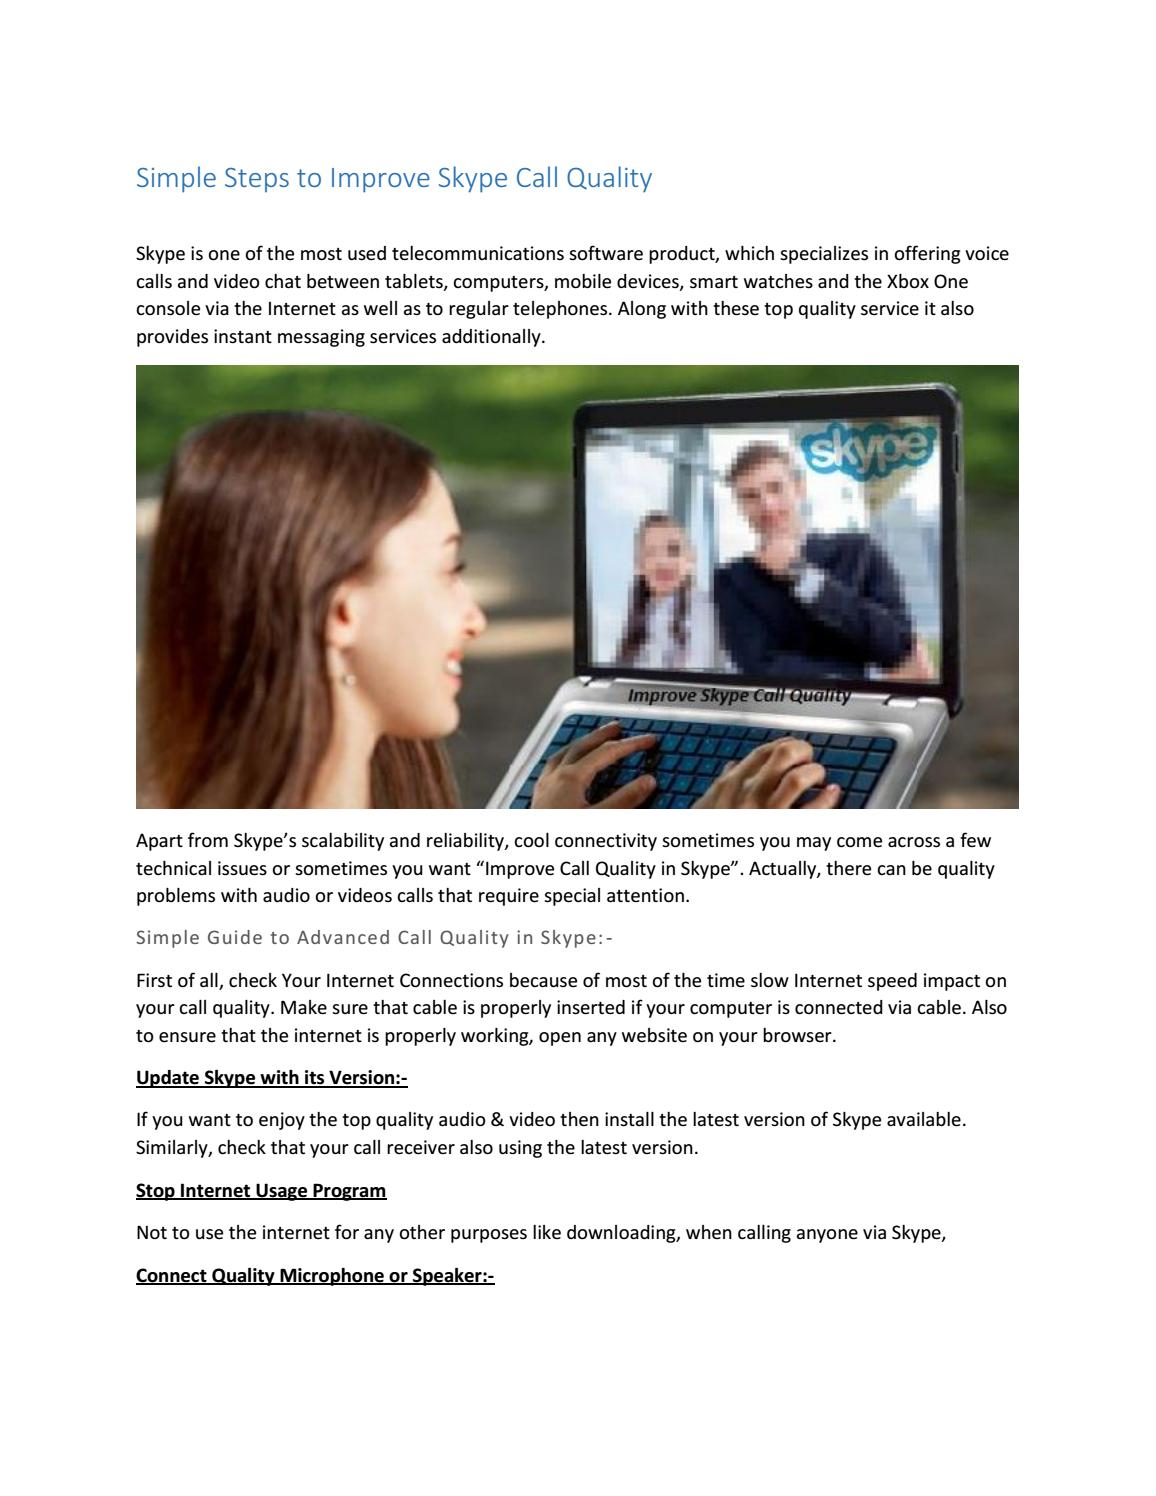 Simple Steps To Improve Skype Call Quality By Erica Clark Issuu